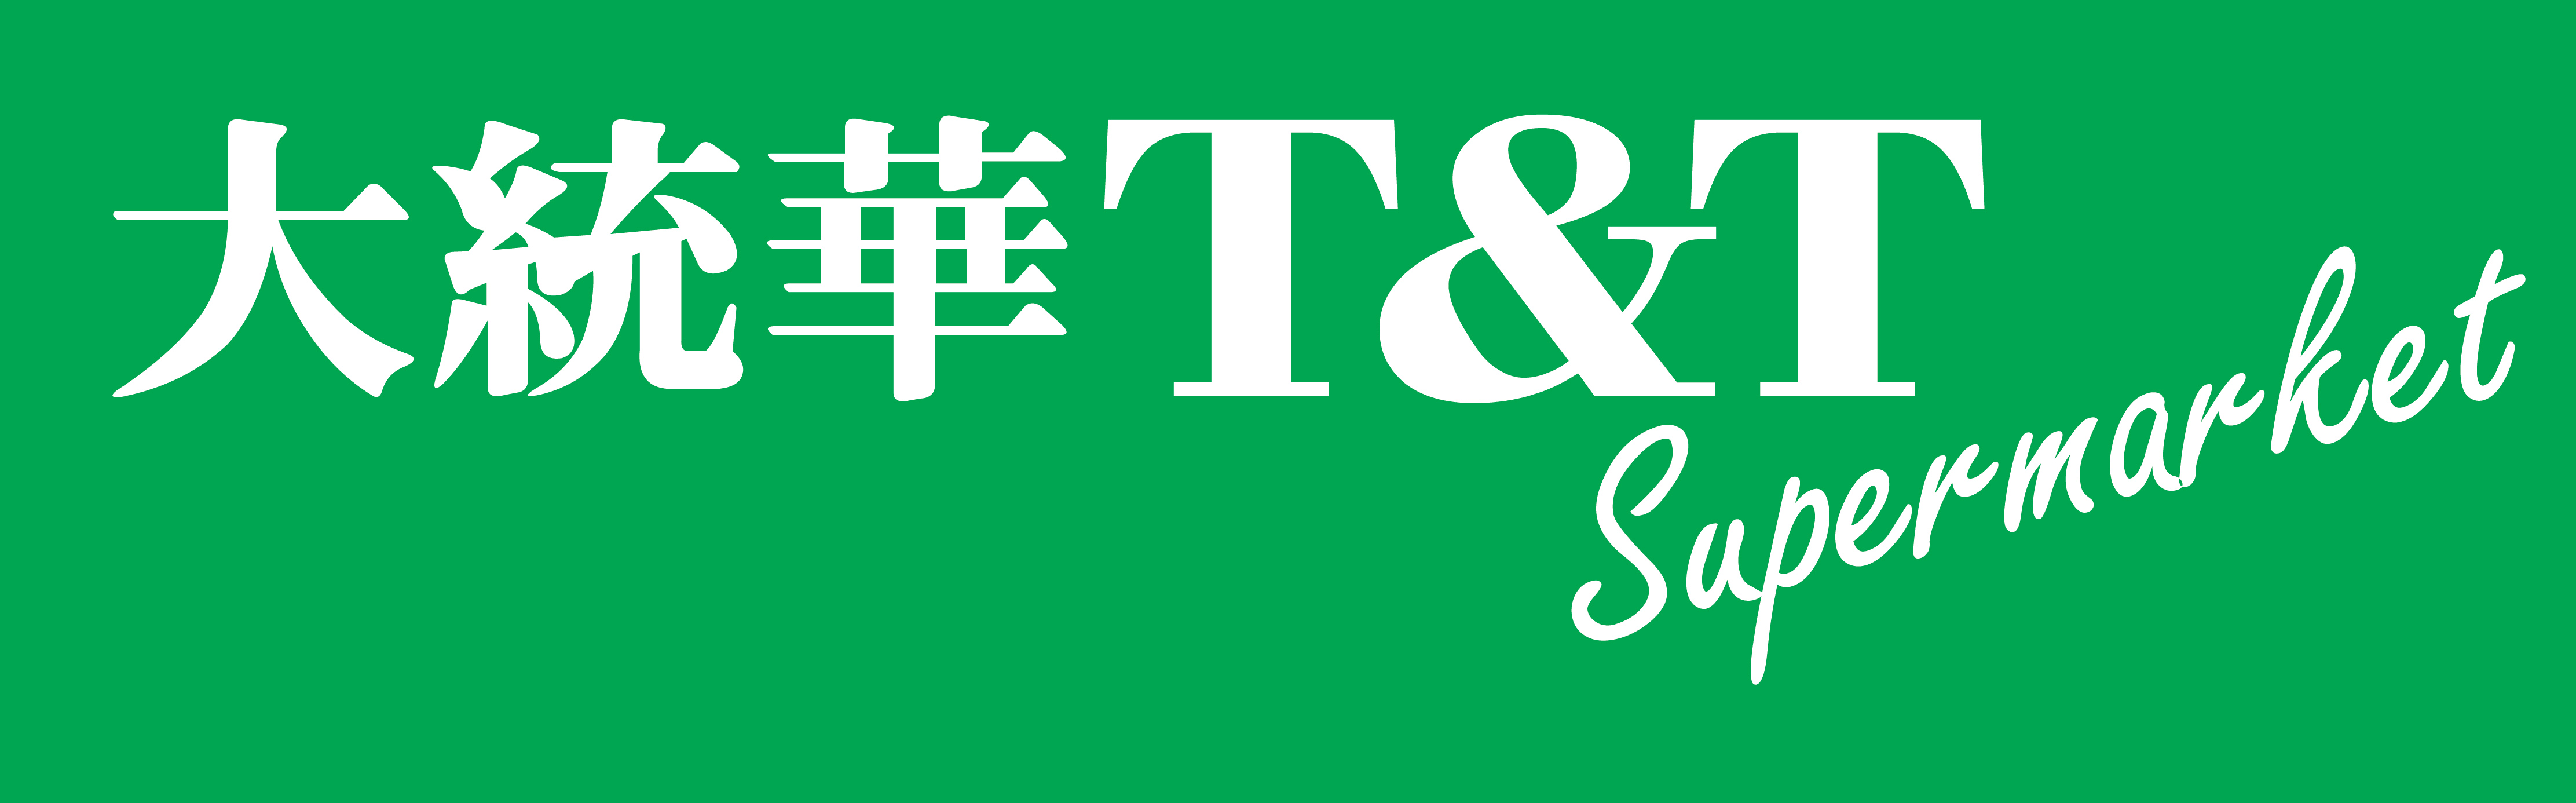 T&Tlogo_with Green Background-02